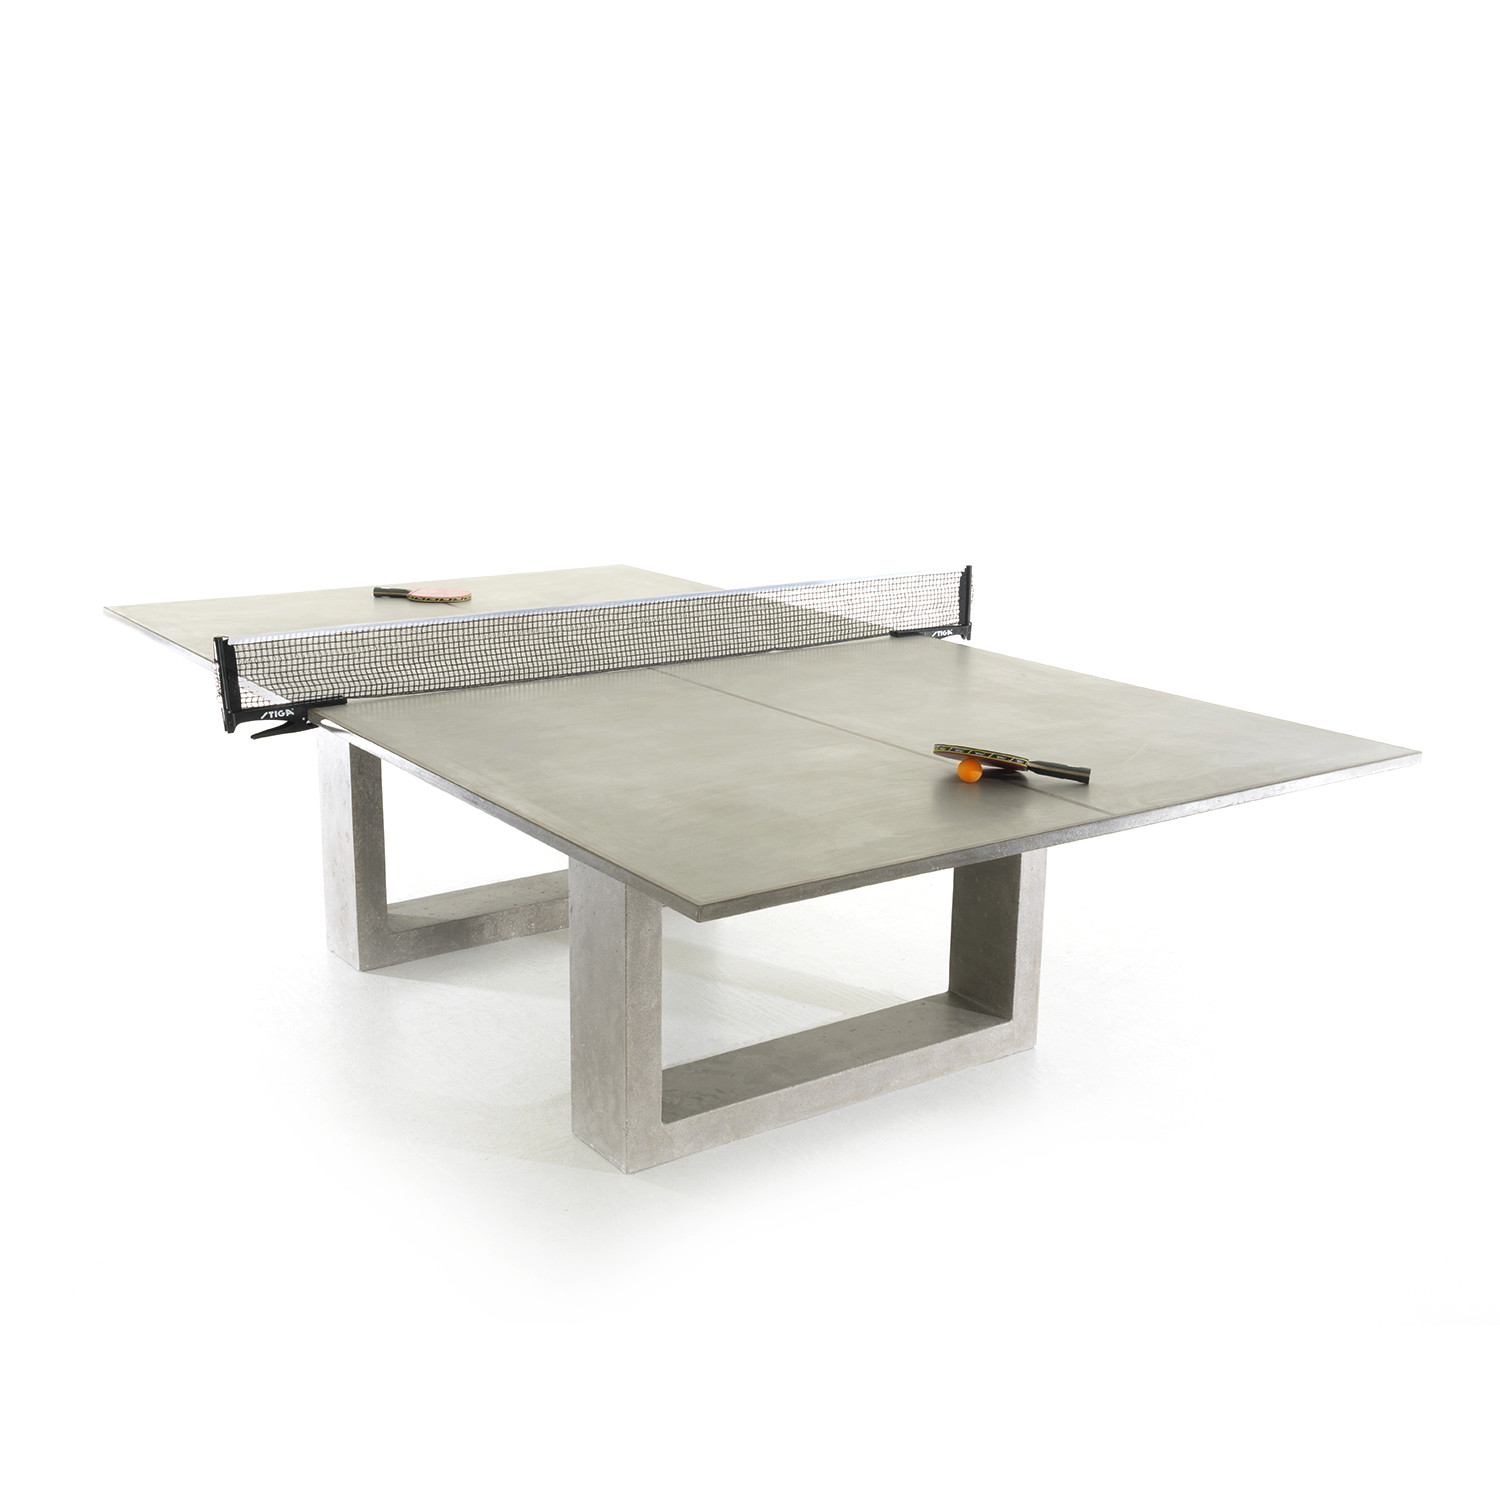 ping pong table (light grey) - james dewulf - touch of modern